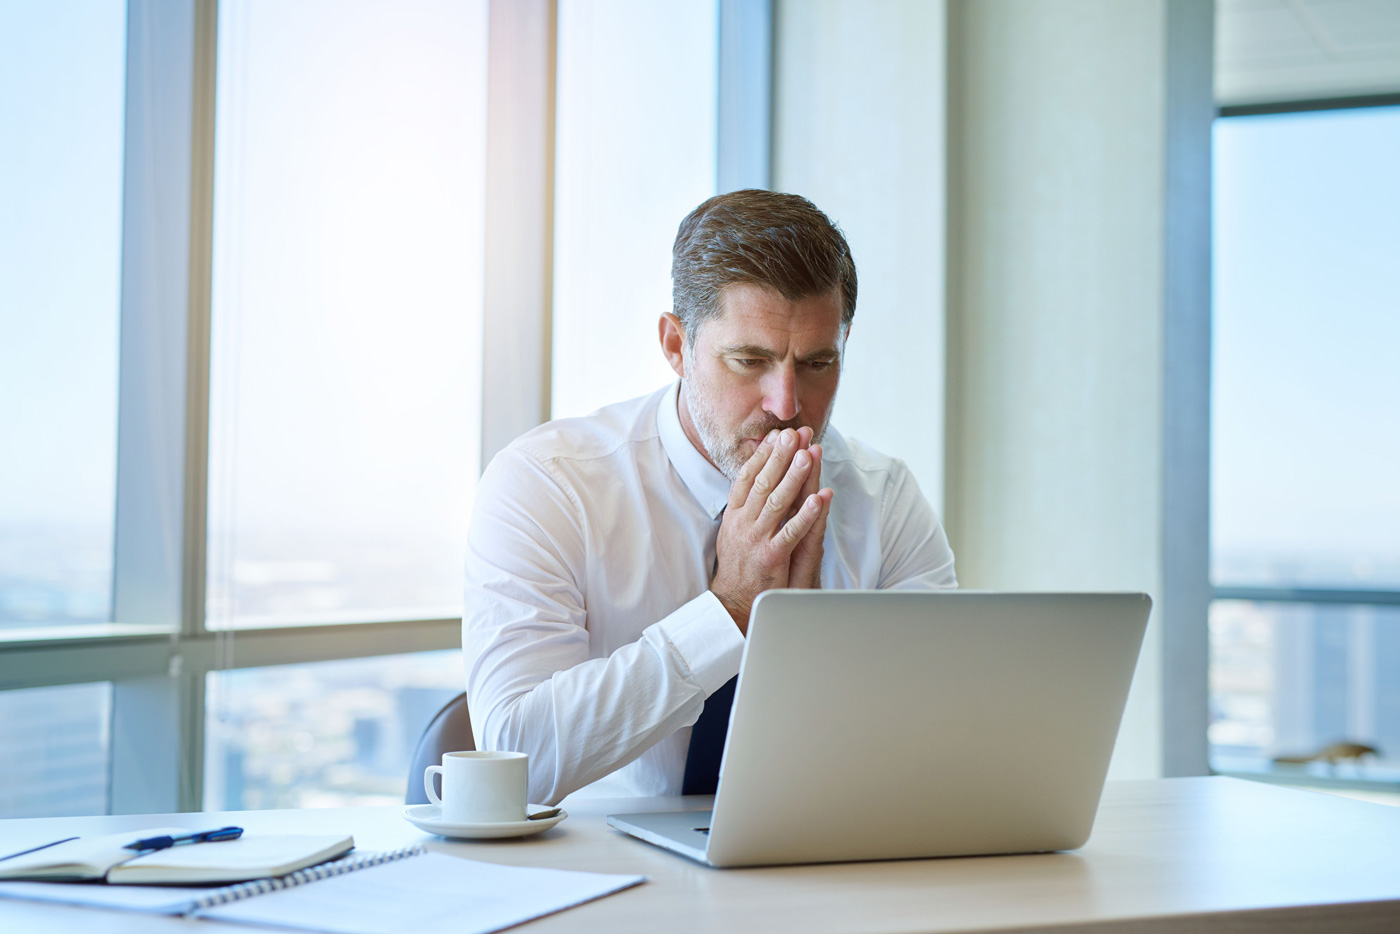 eCommerce Business Owner At His Office Reviewing Data Backup Software On His Laptop